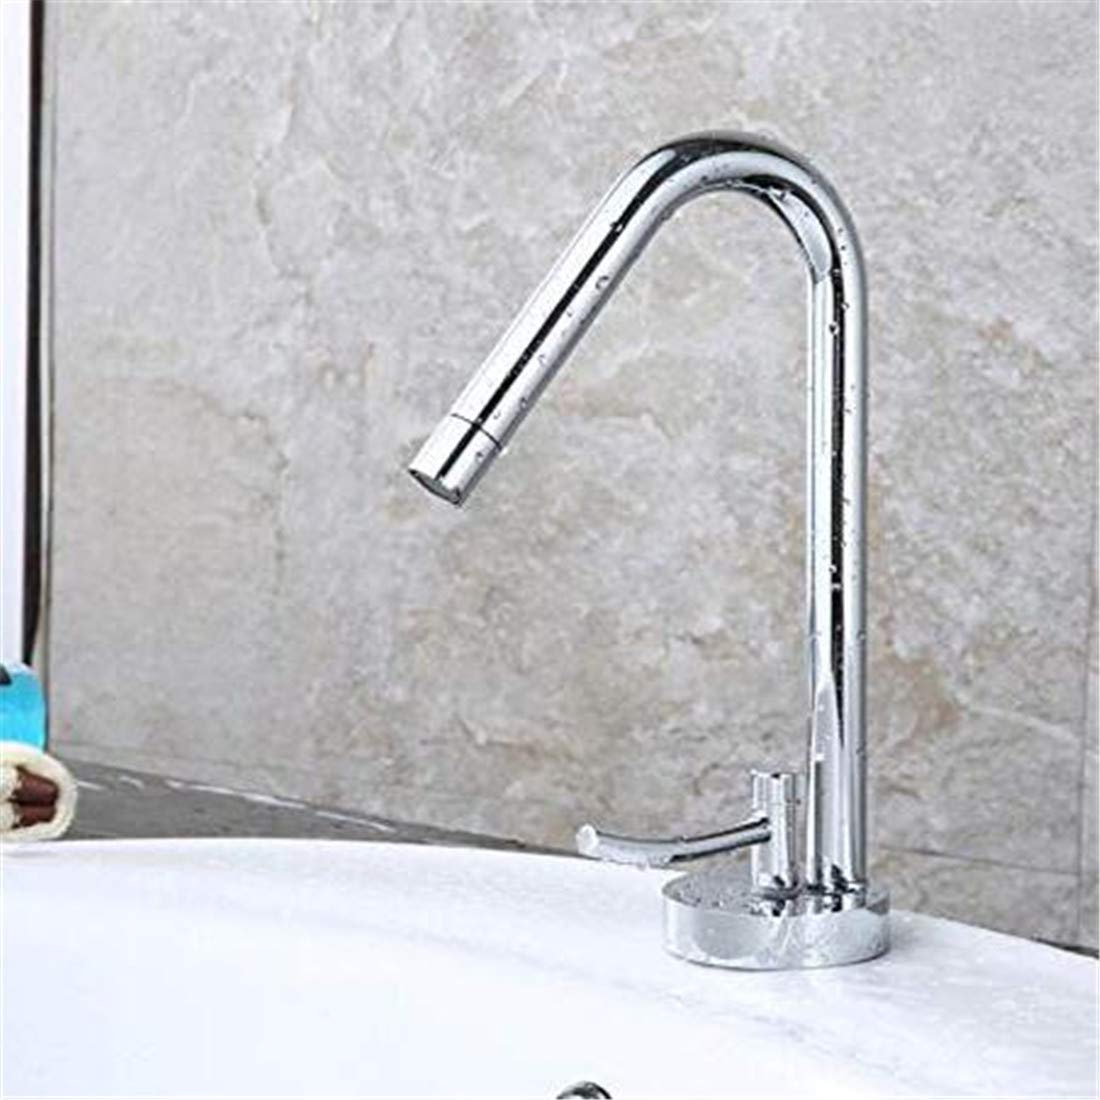 Grifo Cromado De De De Una Sola Palancafaucet Brass Chrome Basin Hot And Cold Faucet Single Hole Single Handle Creative Basin Fregadero De Cocina Mezclador c3a790